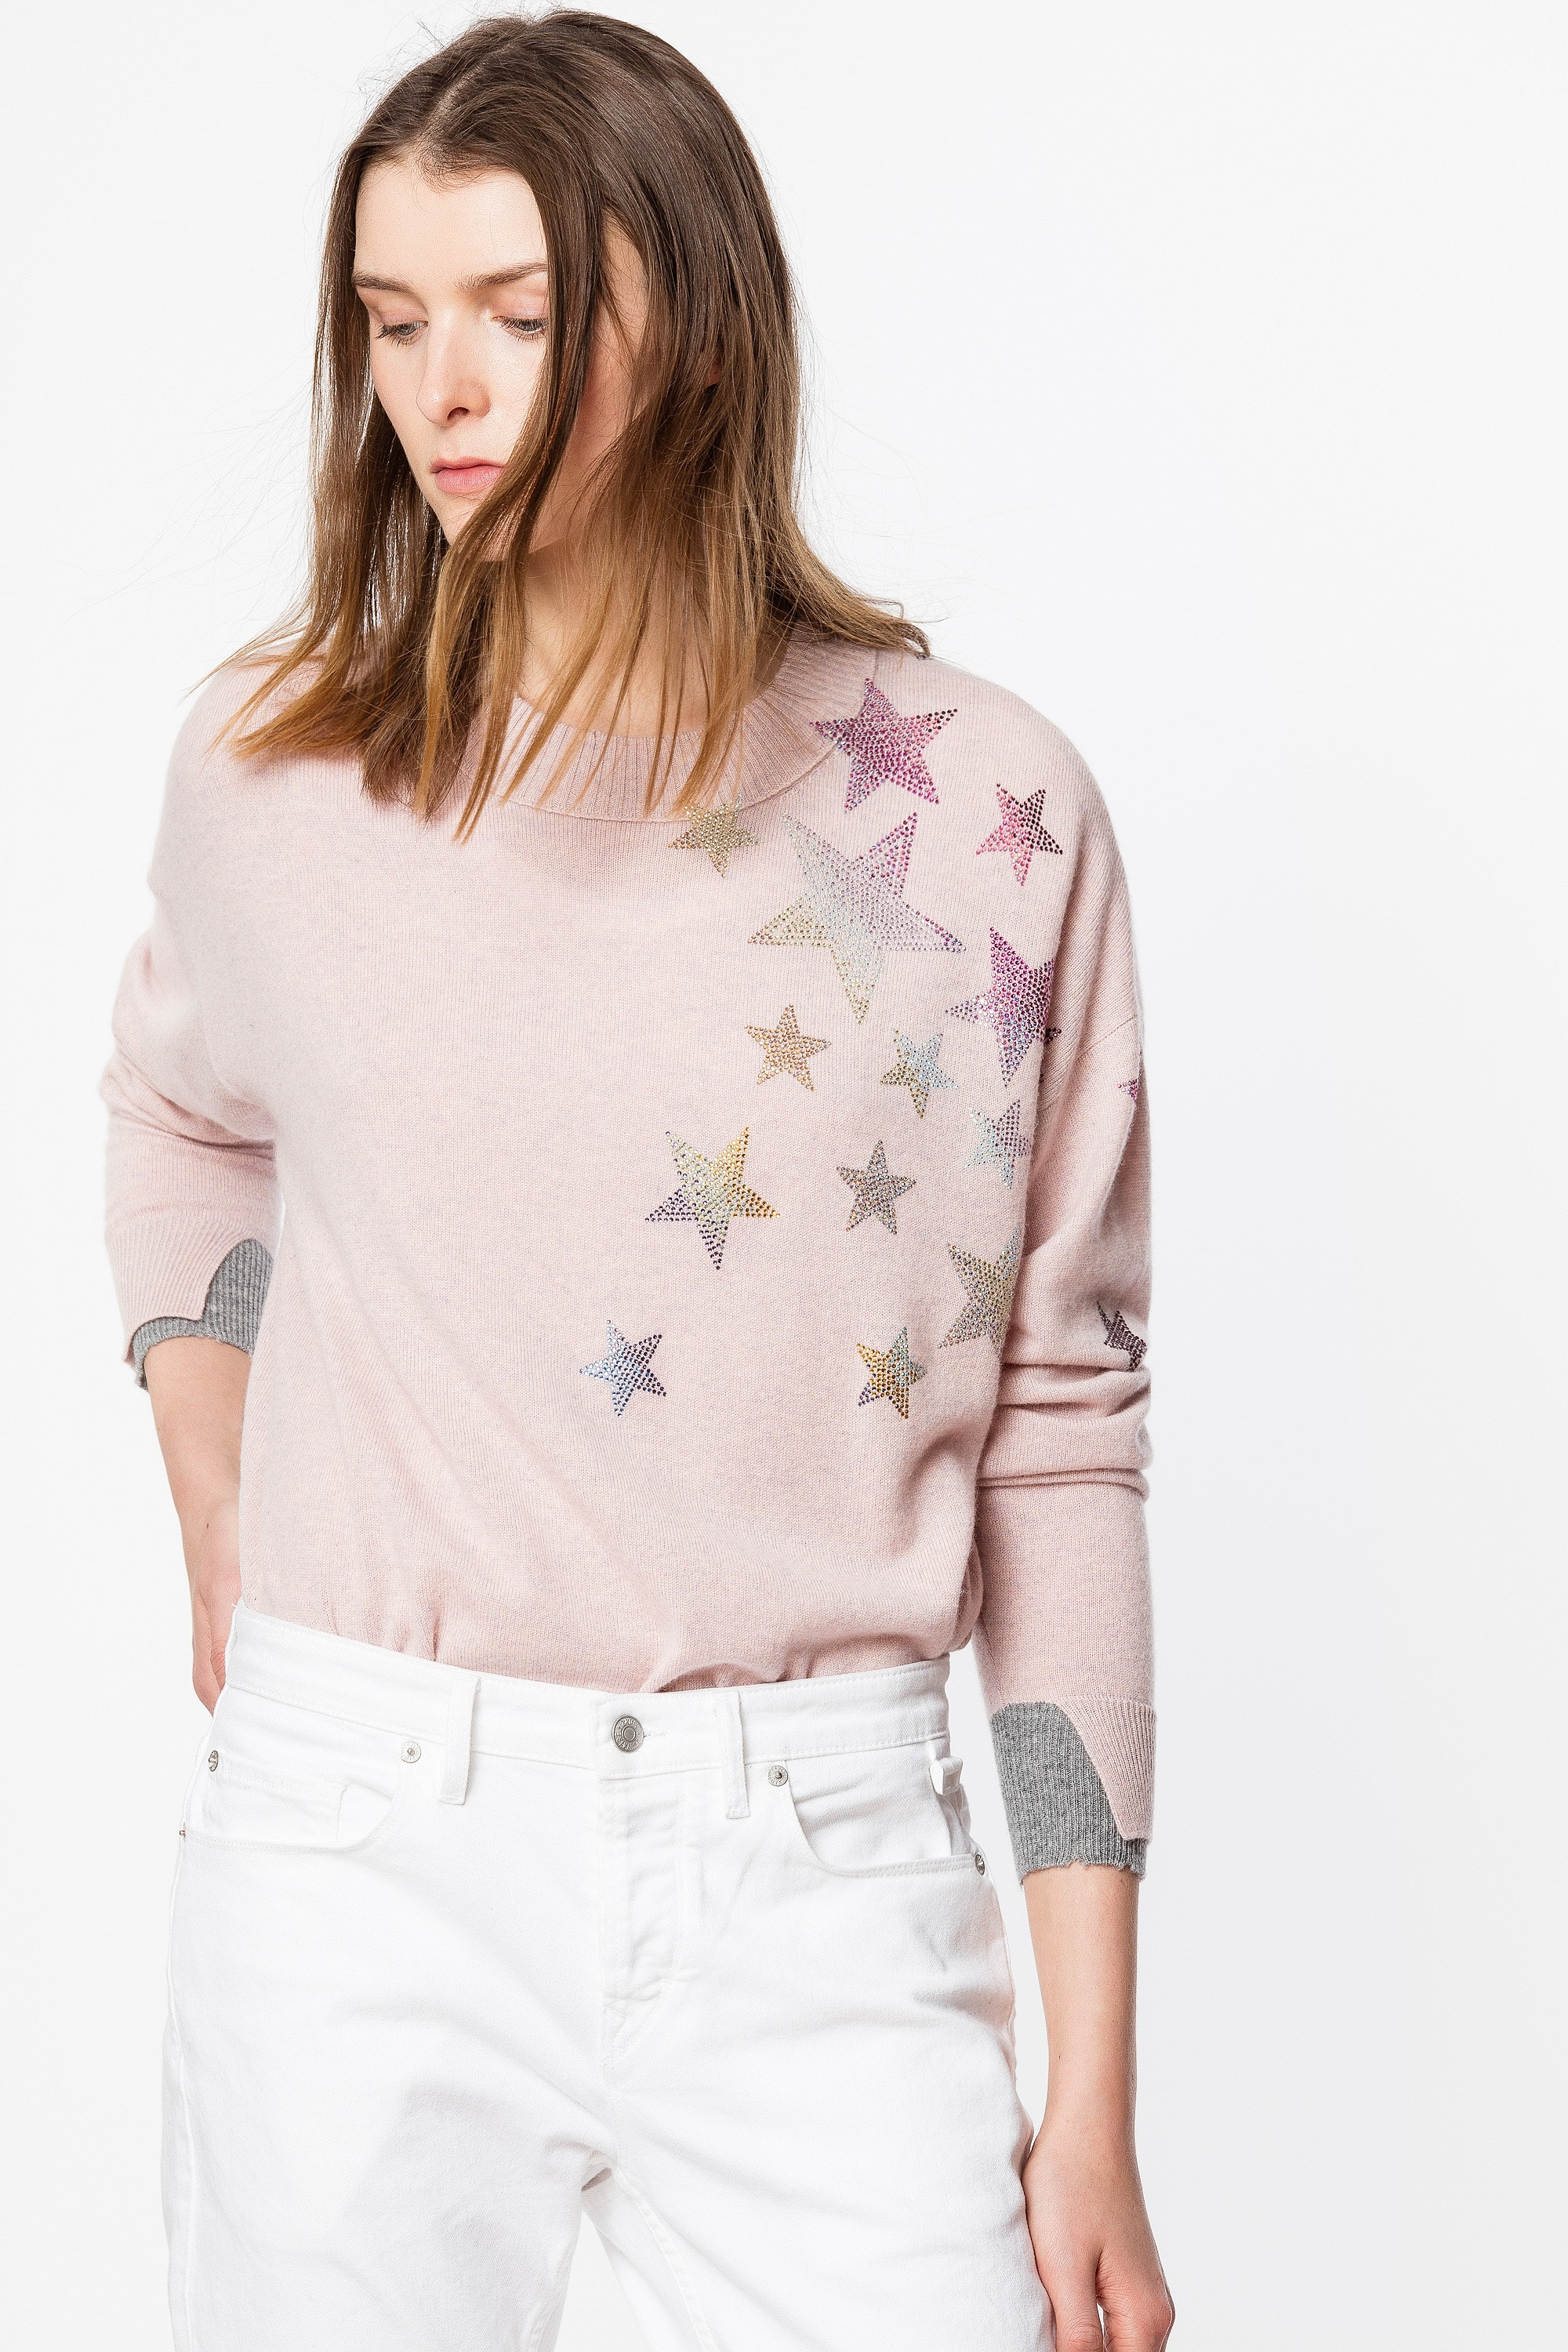 Gaby Star Cachemire sweater